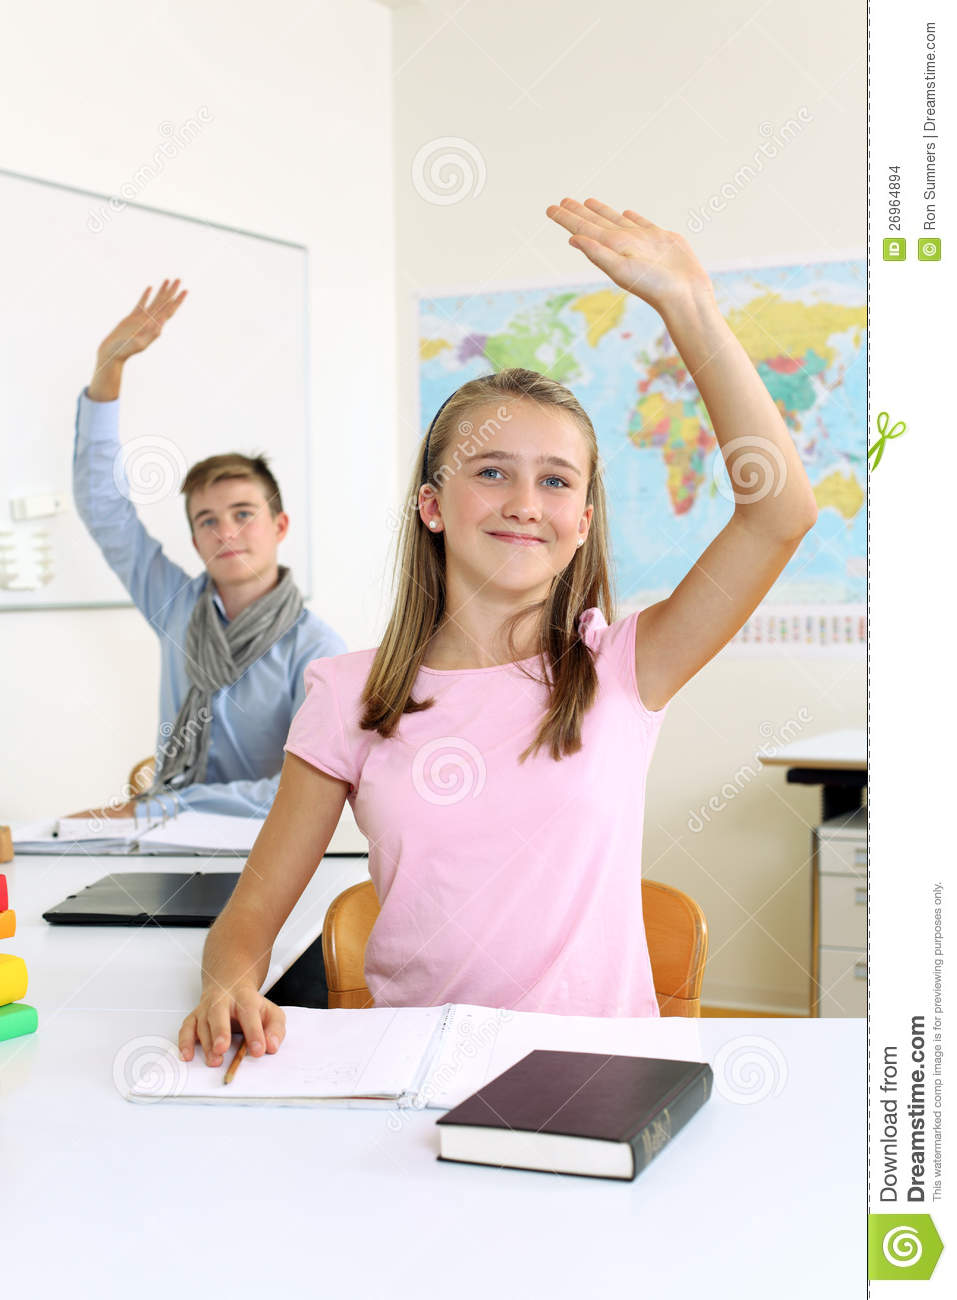 ... two students in their class raising their hands to answer a question